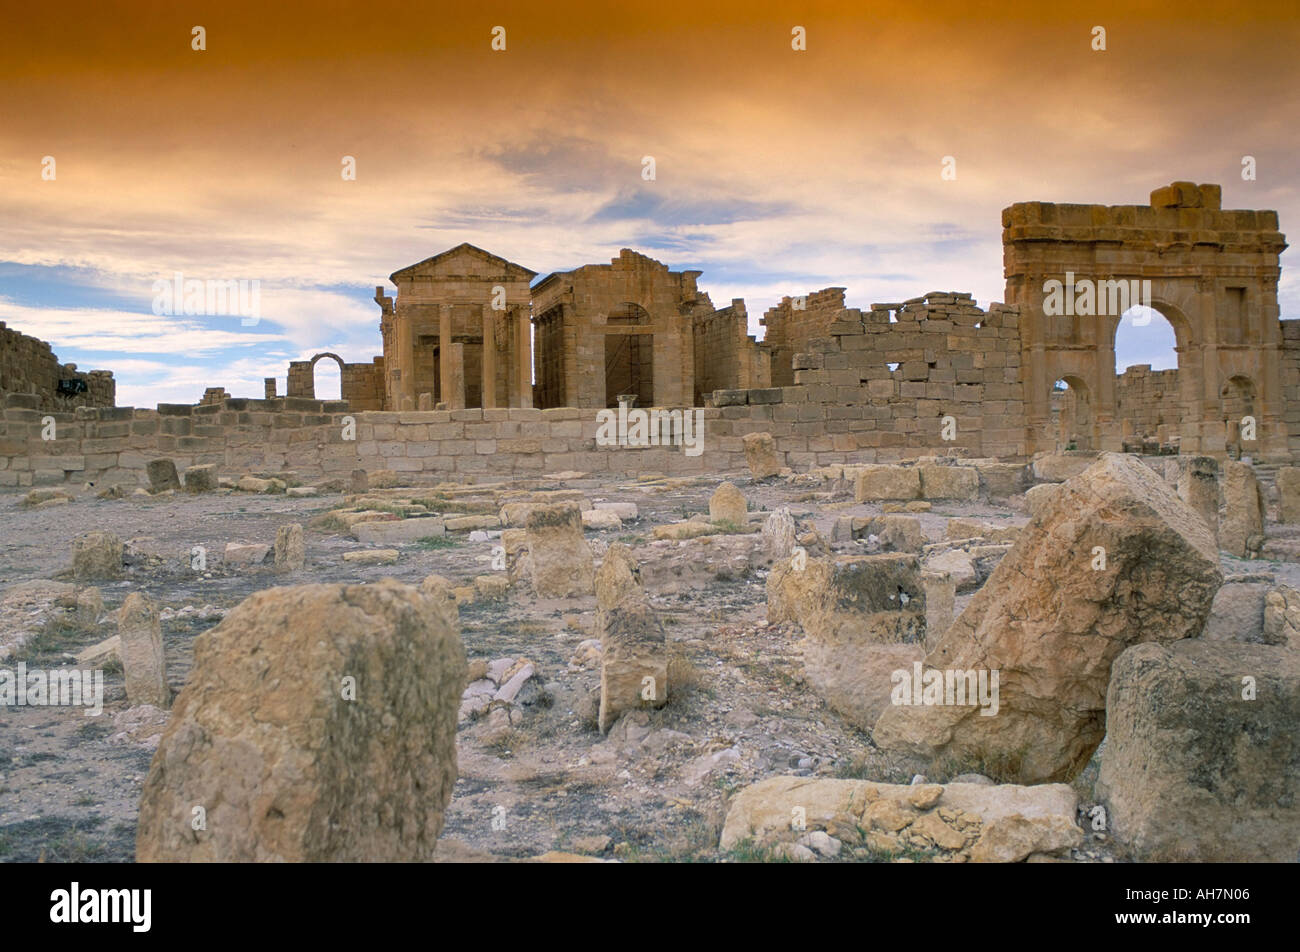 Capitol with three separate temples to Jupiter Minerva and Juno archaeological site of Sbeitla Sufetula Tunisia North Africa Afr - Stock Image